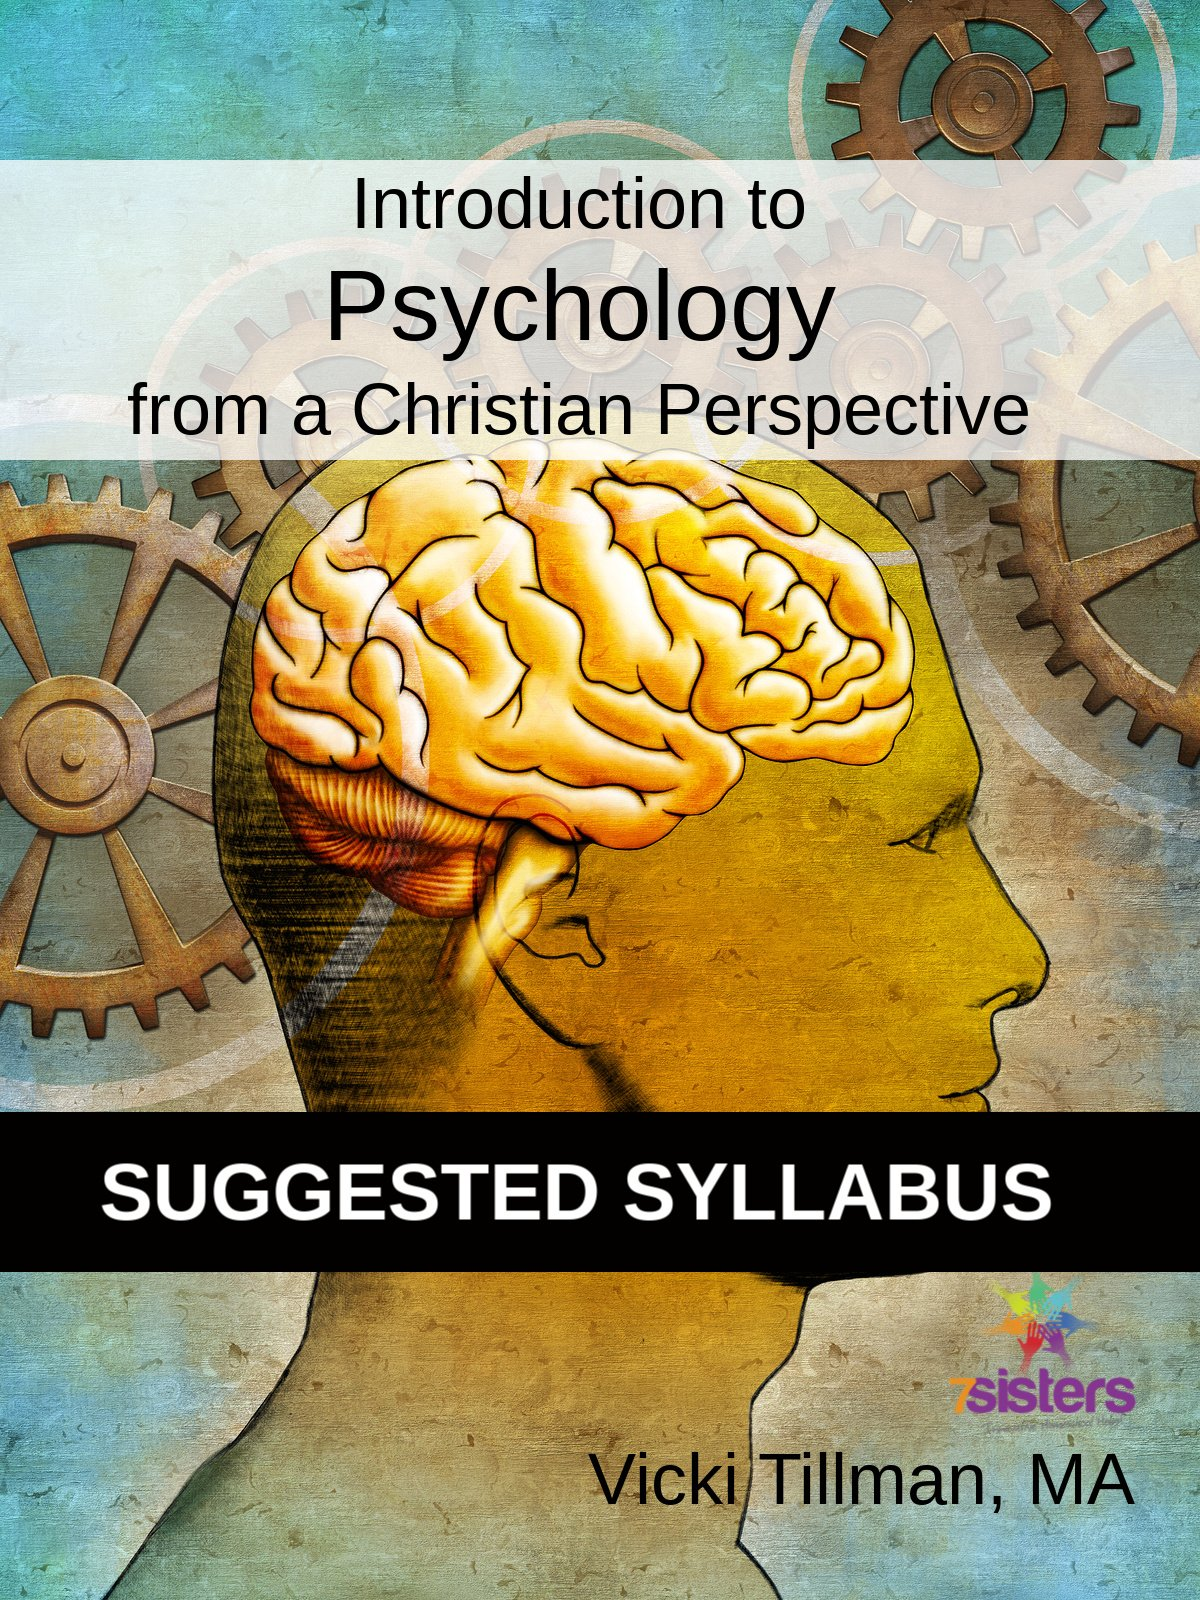 Suggested Syllabus for Introduction to Psychology